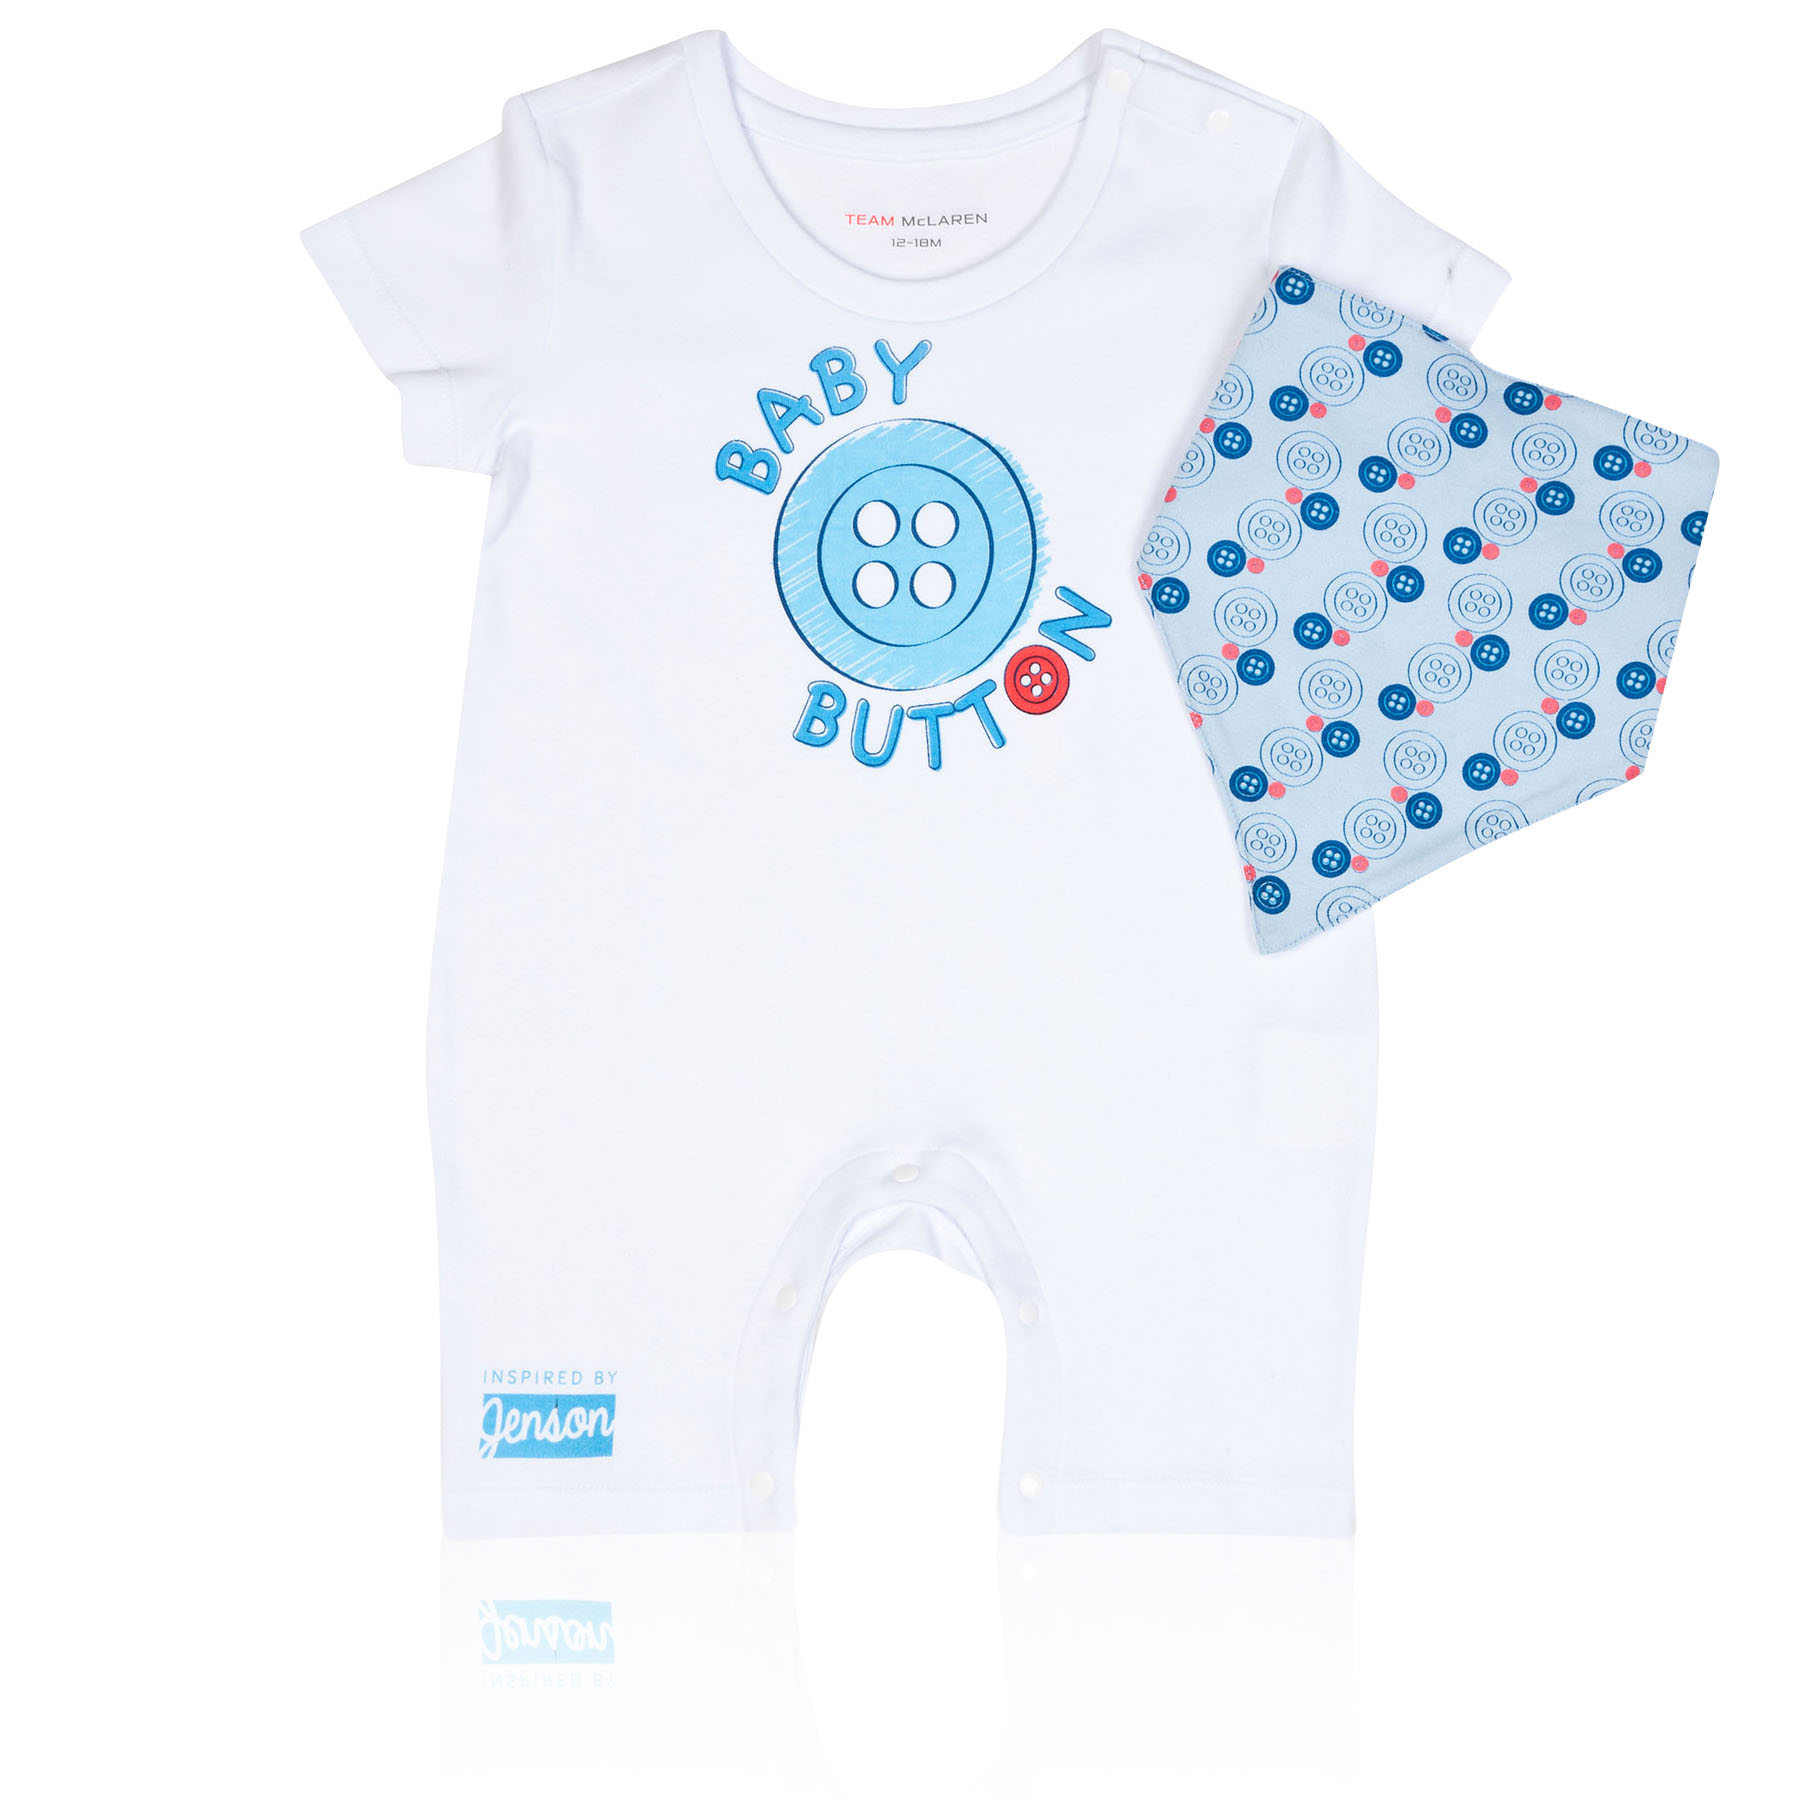 McLaren Mercedes 2014 Baby Button Romper Suit